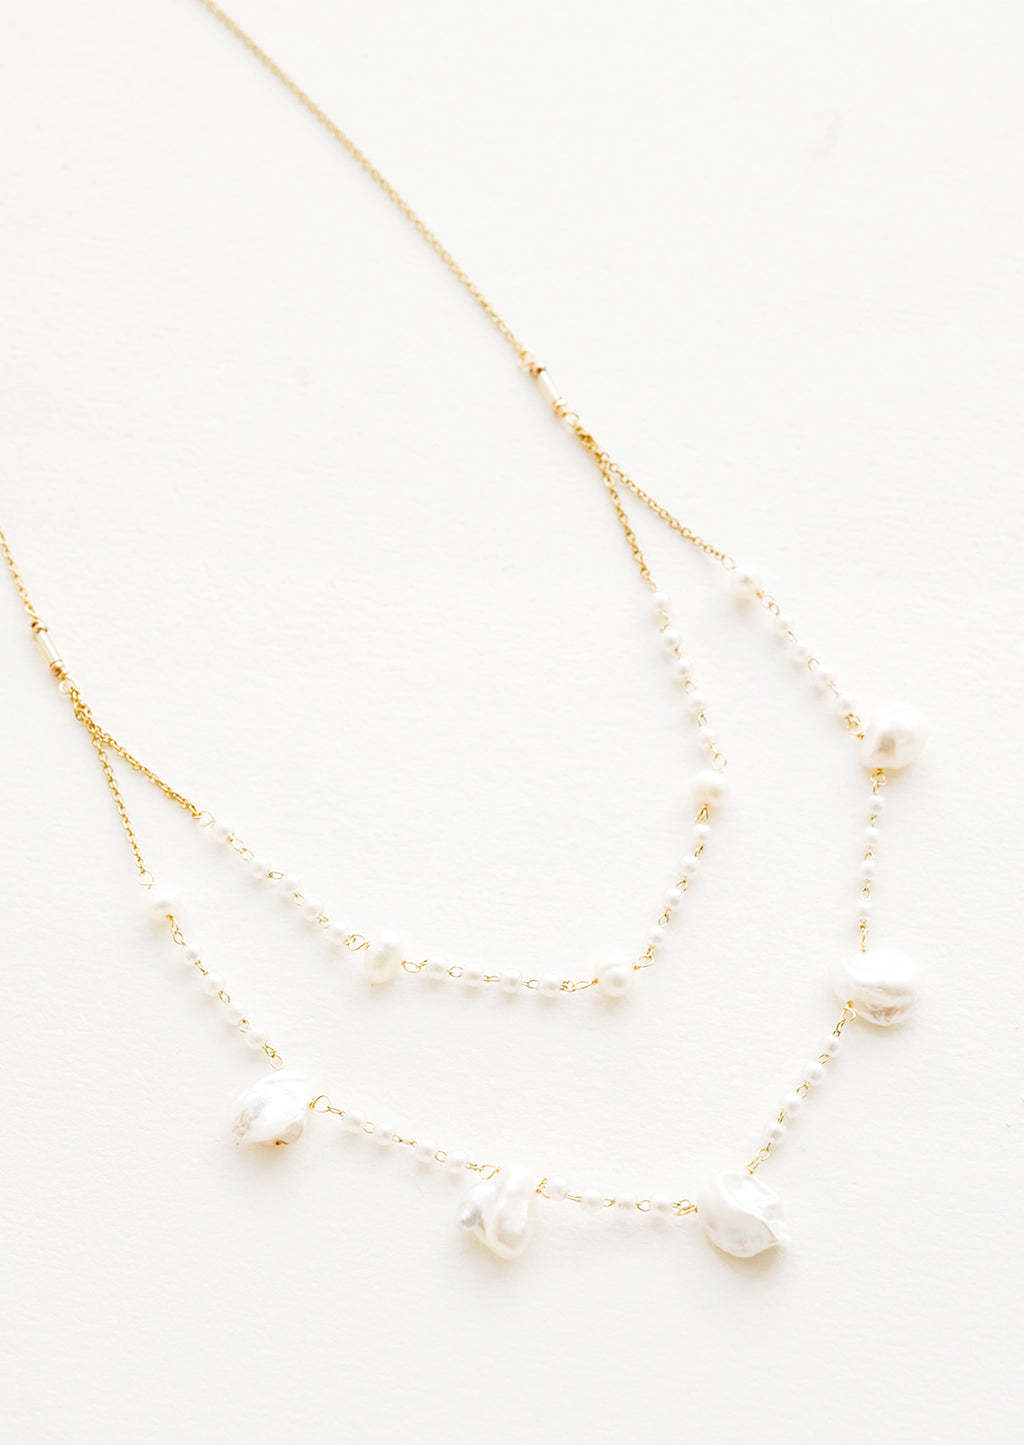 2: Layered Baroque Pearl Necklace in  - LEIF